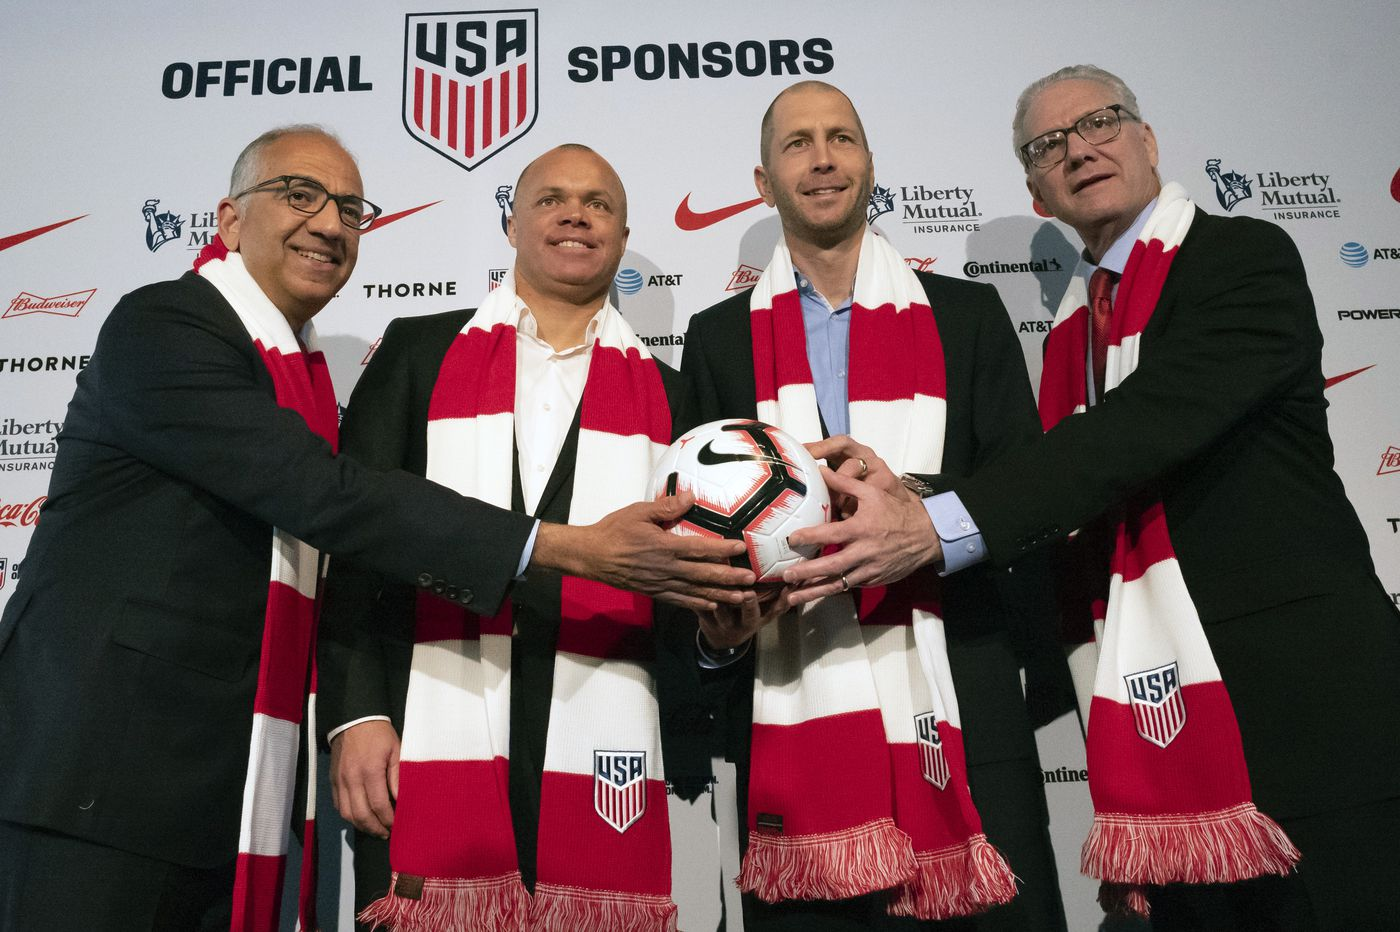 No new CEO yet for U.S. Soccer, but hire likely coming in next few months